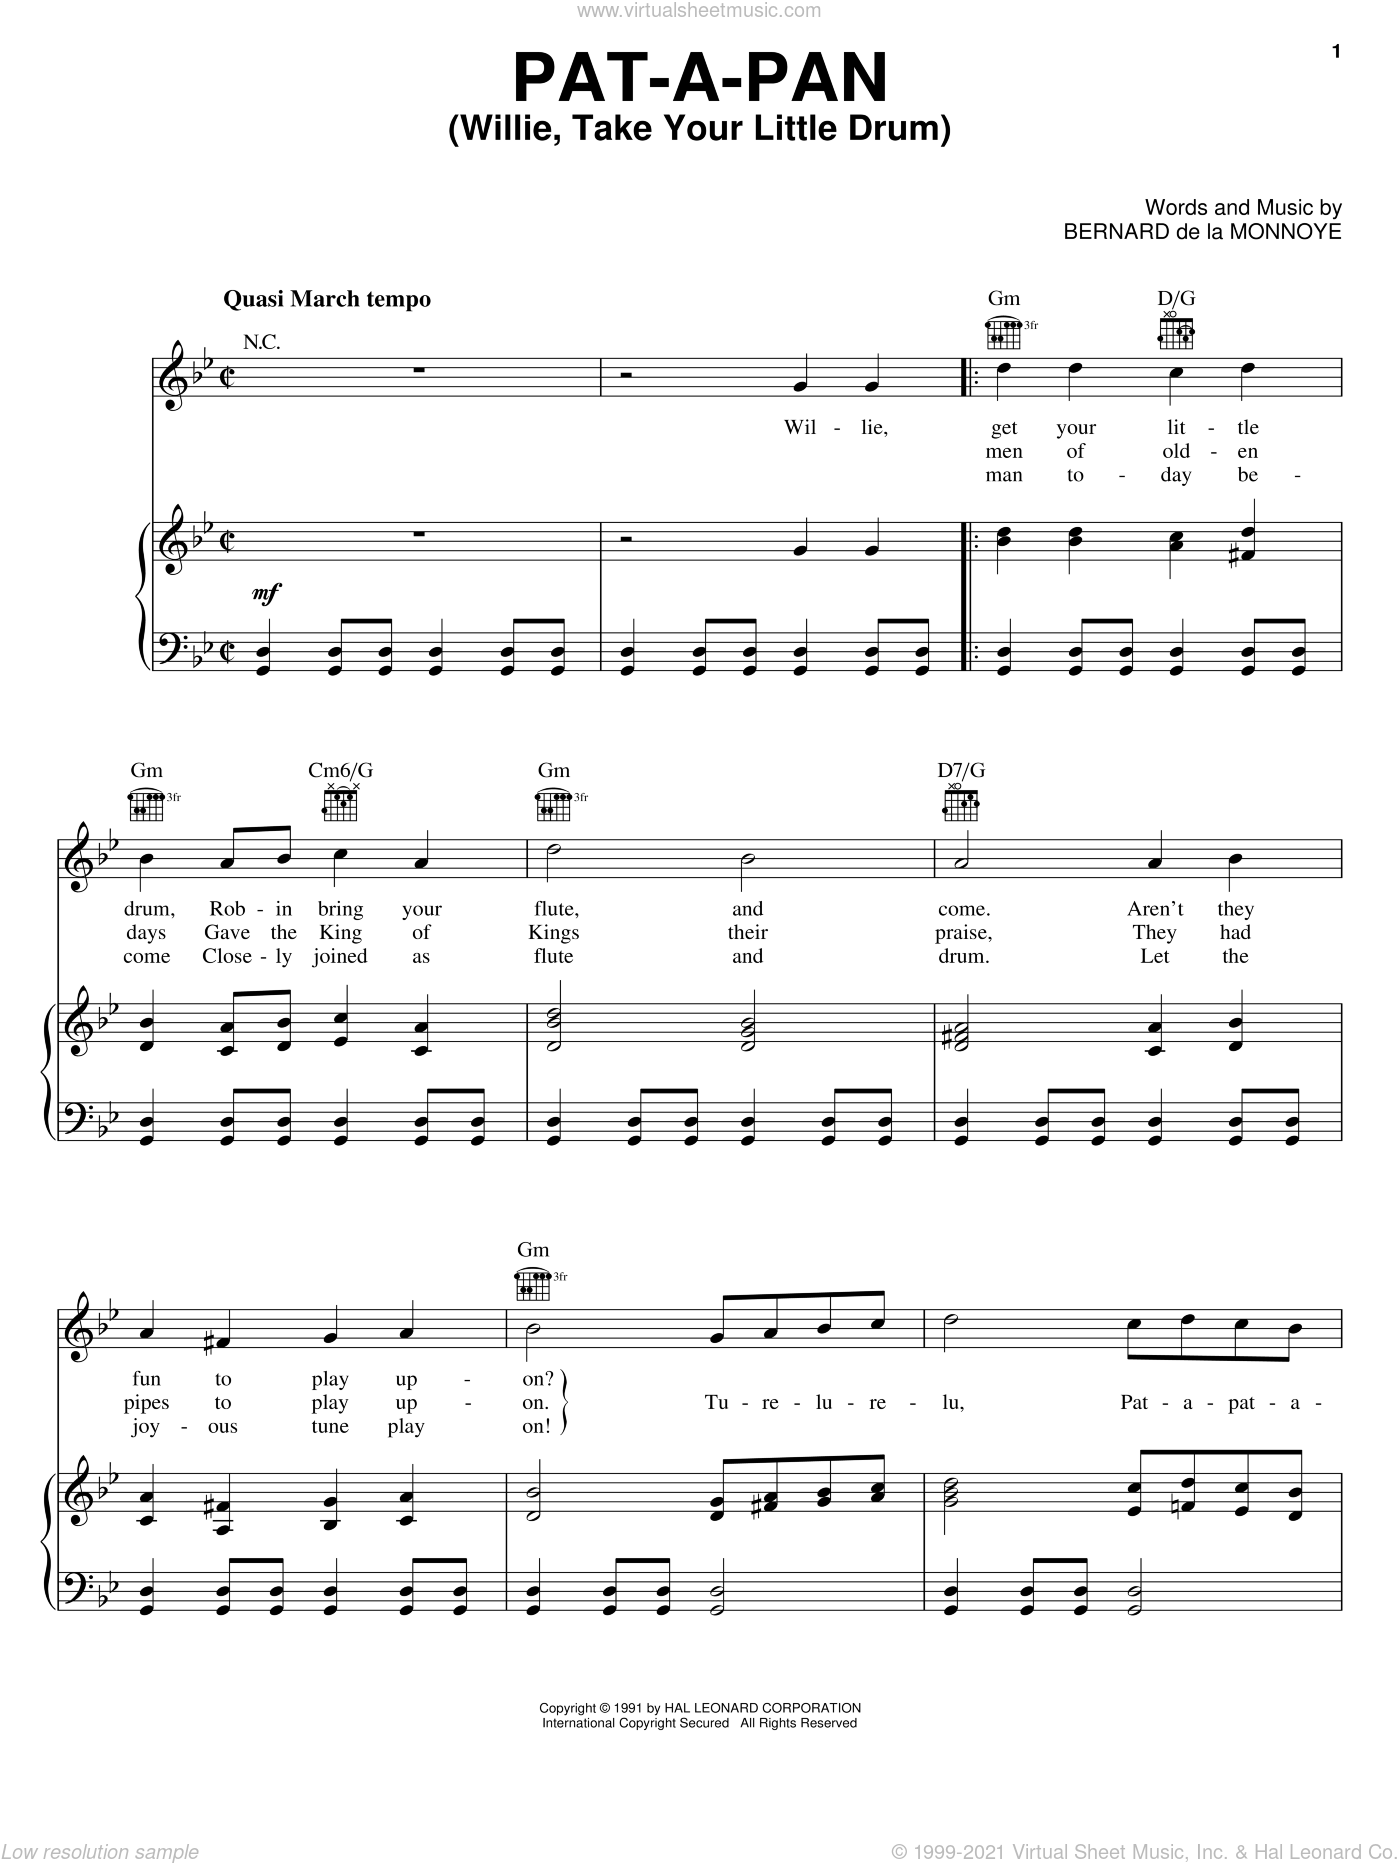 Pat-A-Pan (Willie, Take Your Little Drum) sheet music for voice, piano or guitar by Bernard de la Monnoye. Score Image Preview.